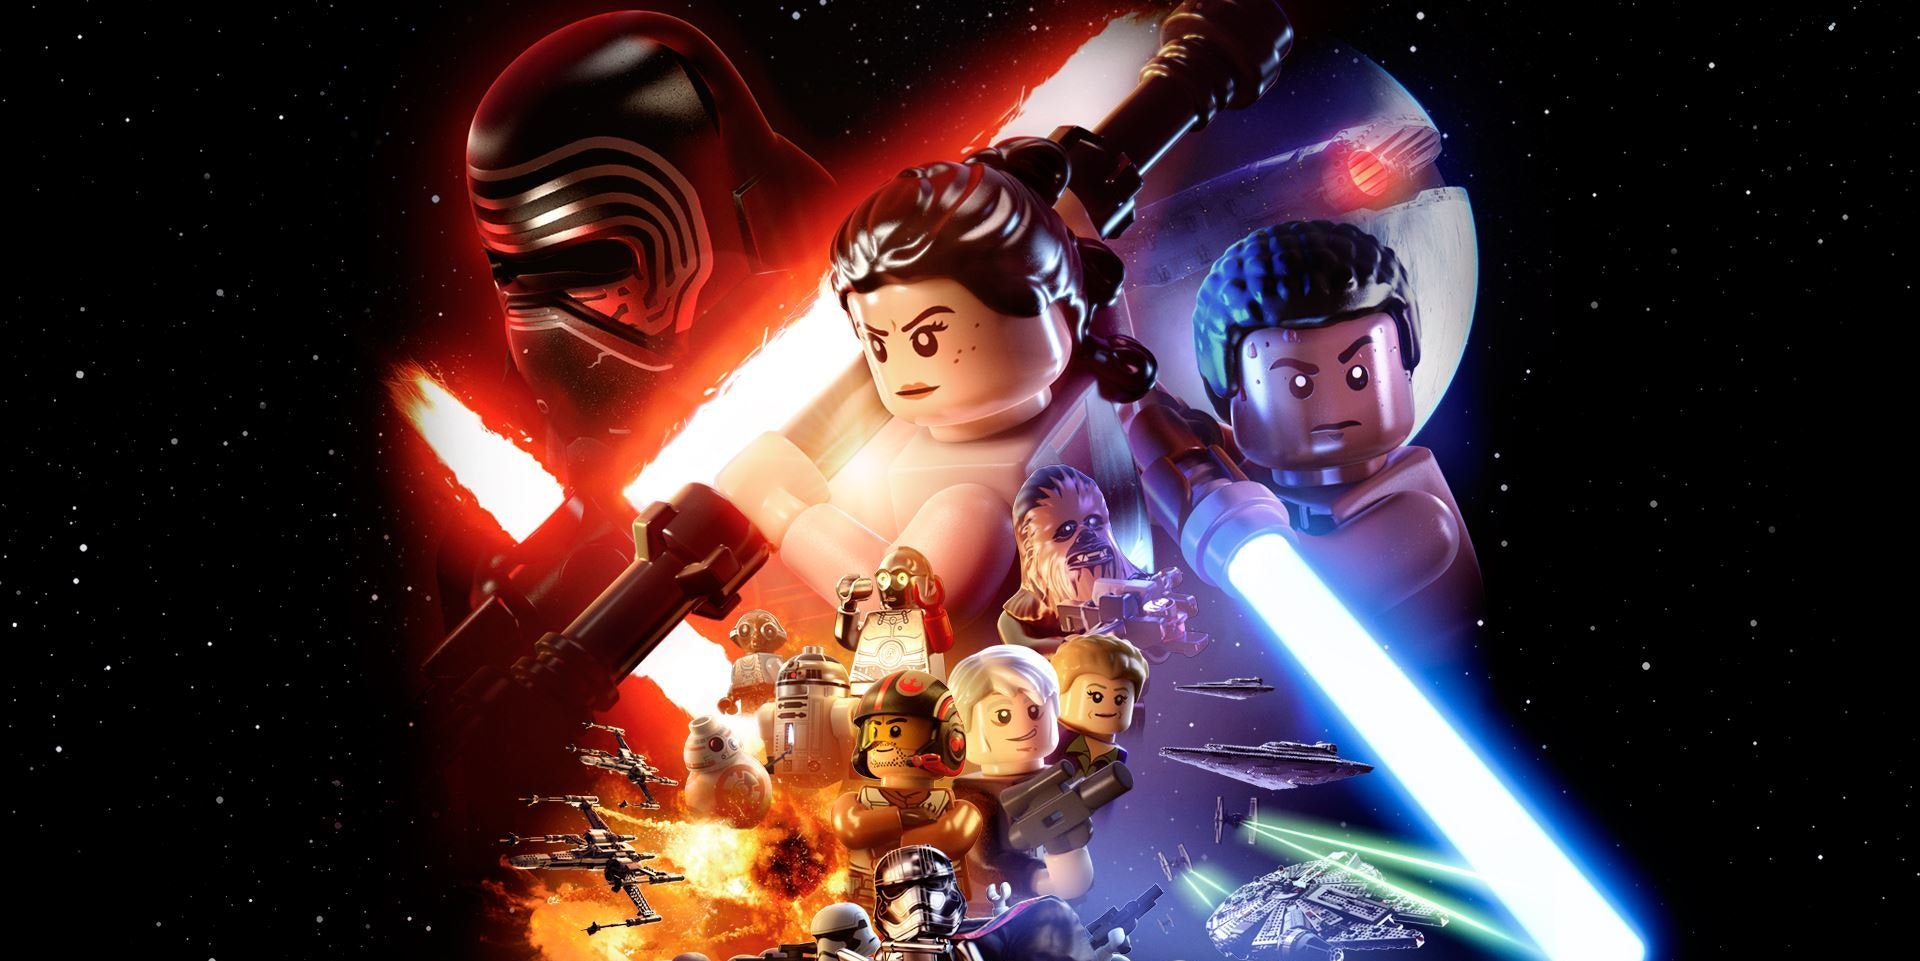 8 Minor Characters We'd Love to Play in 'Lego Star Wars: The Force Awakens'